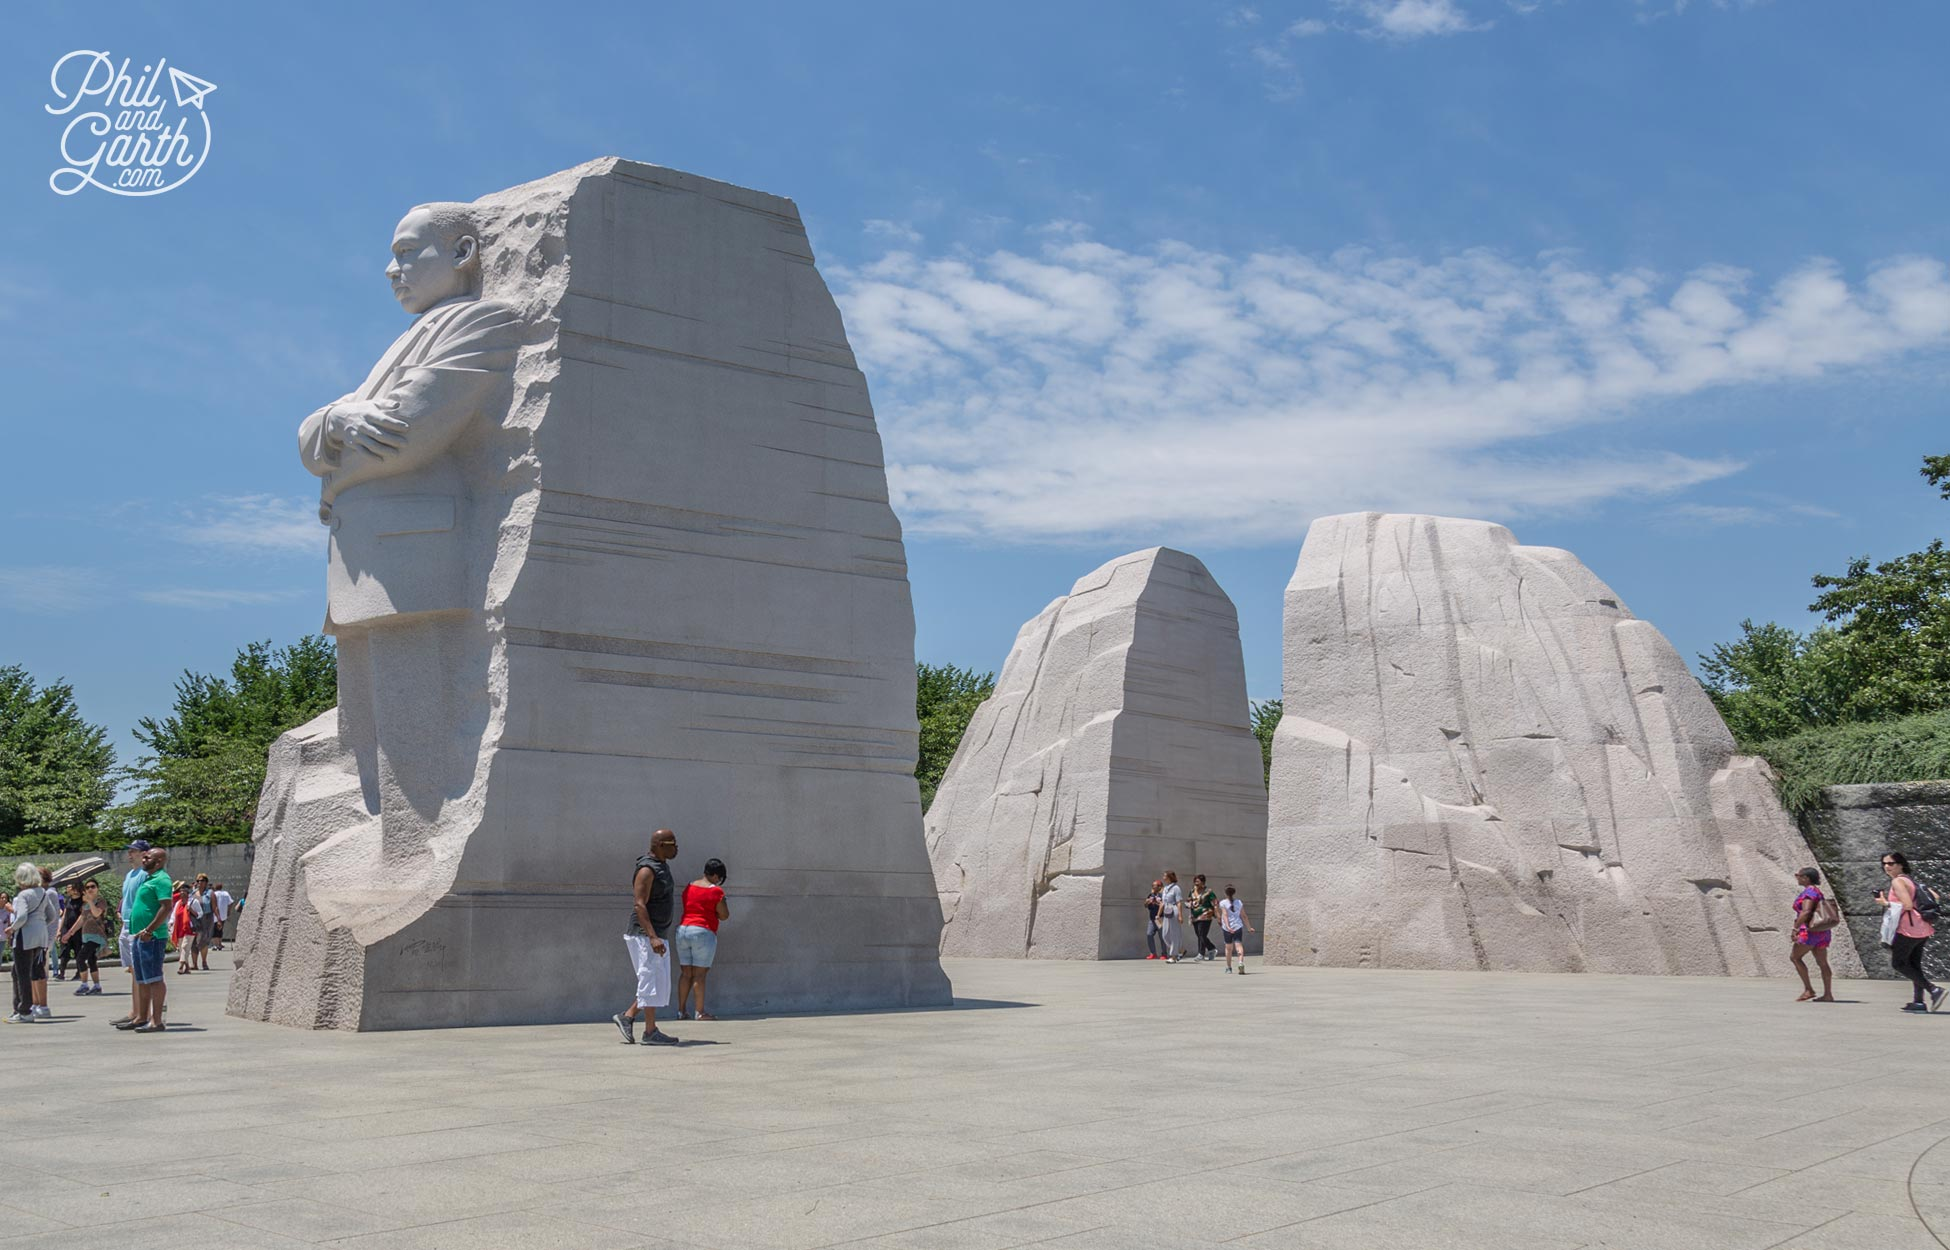 The Martin Luther King Jr Memorial